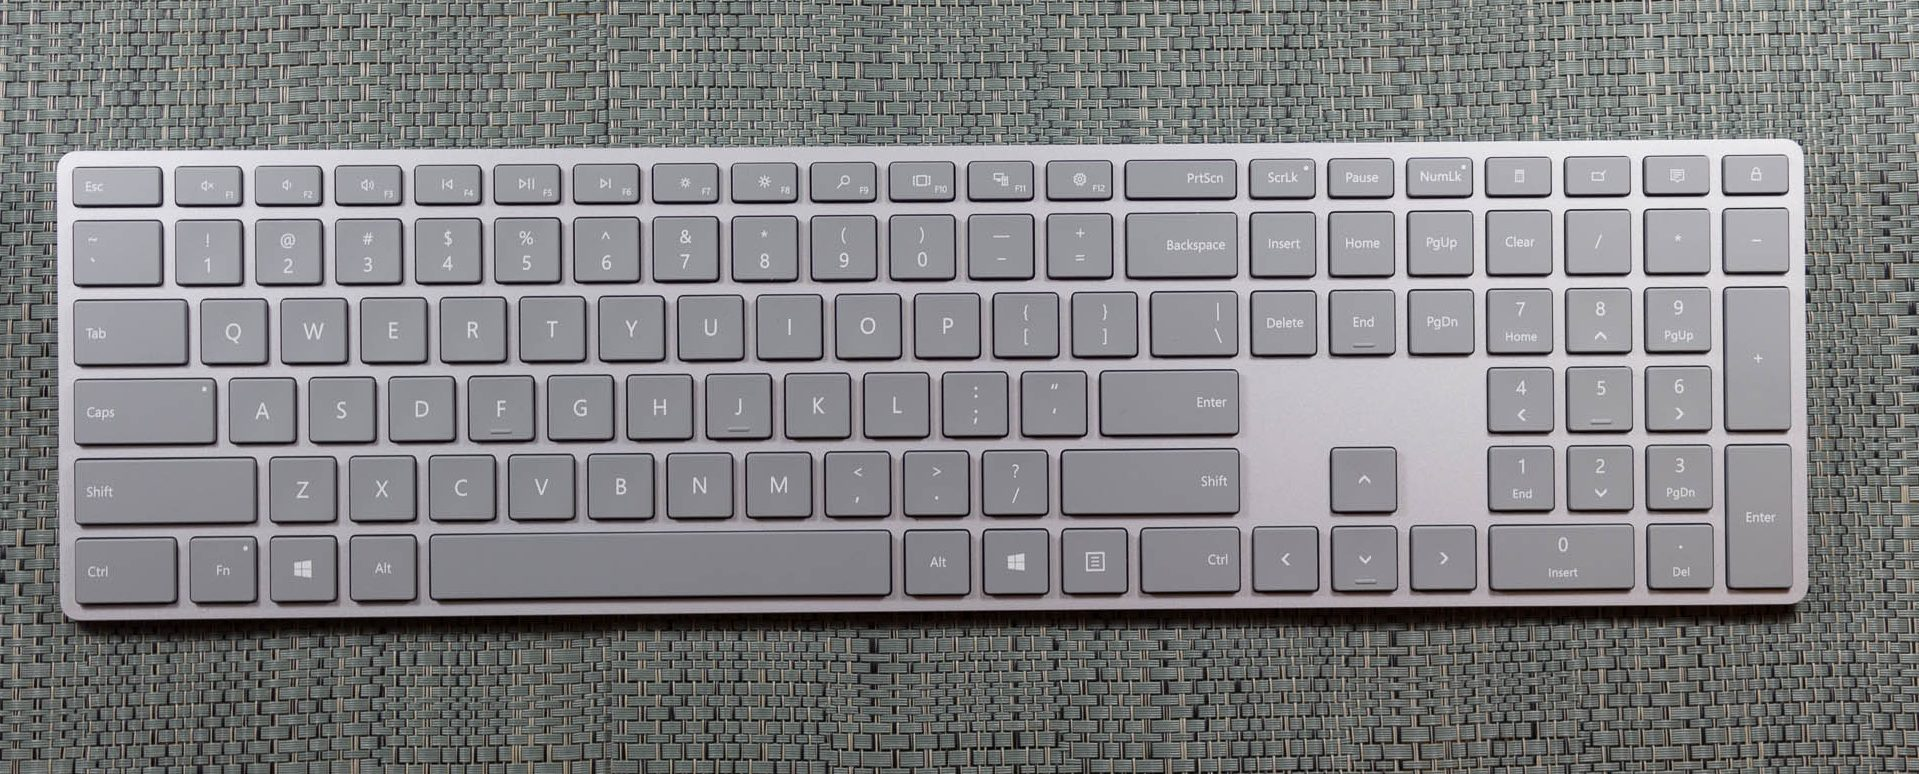 microsoft surface keyboard windows 7 drivers